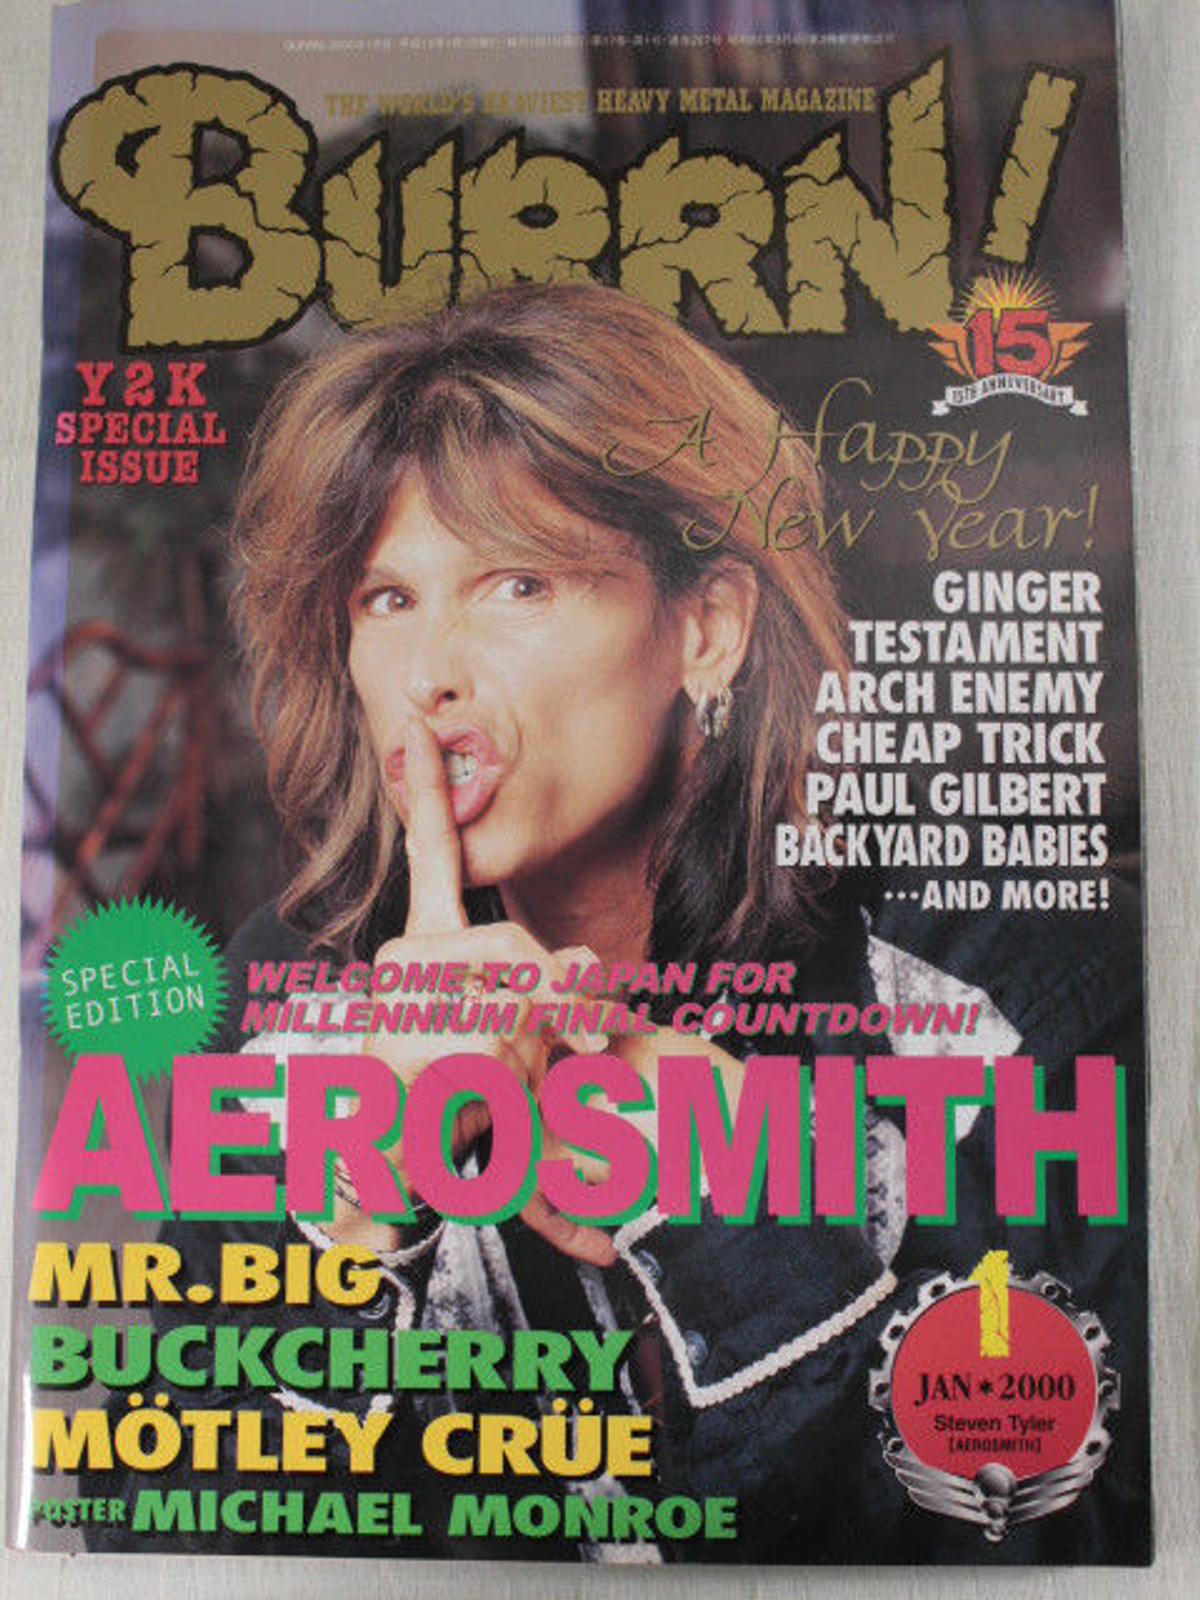 2000/01 BURRN! Japan Rock Magazine AEROSMITH/BUCKCHERRY/IZZY STRADLIN/MR.BIG